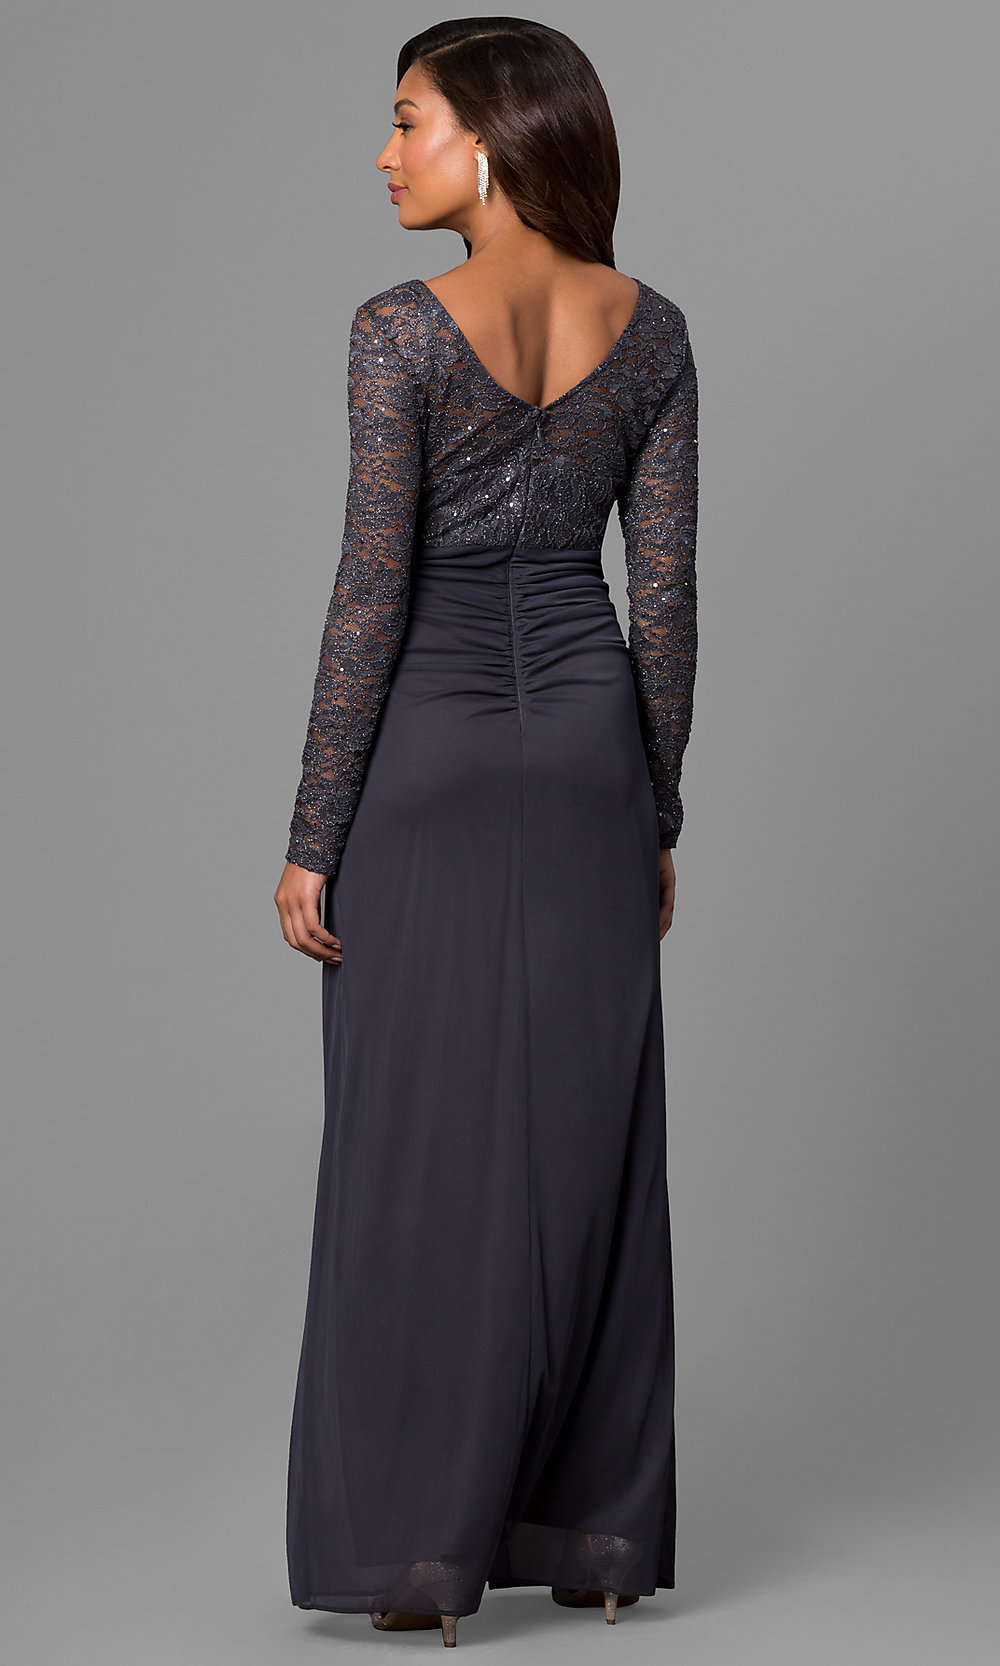 Gunmetal Wedding-Guest Dress with Lace-PromGirl